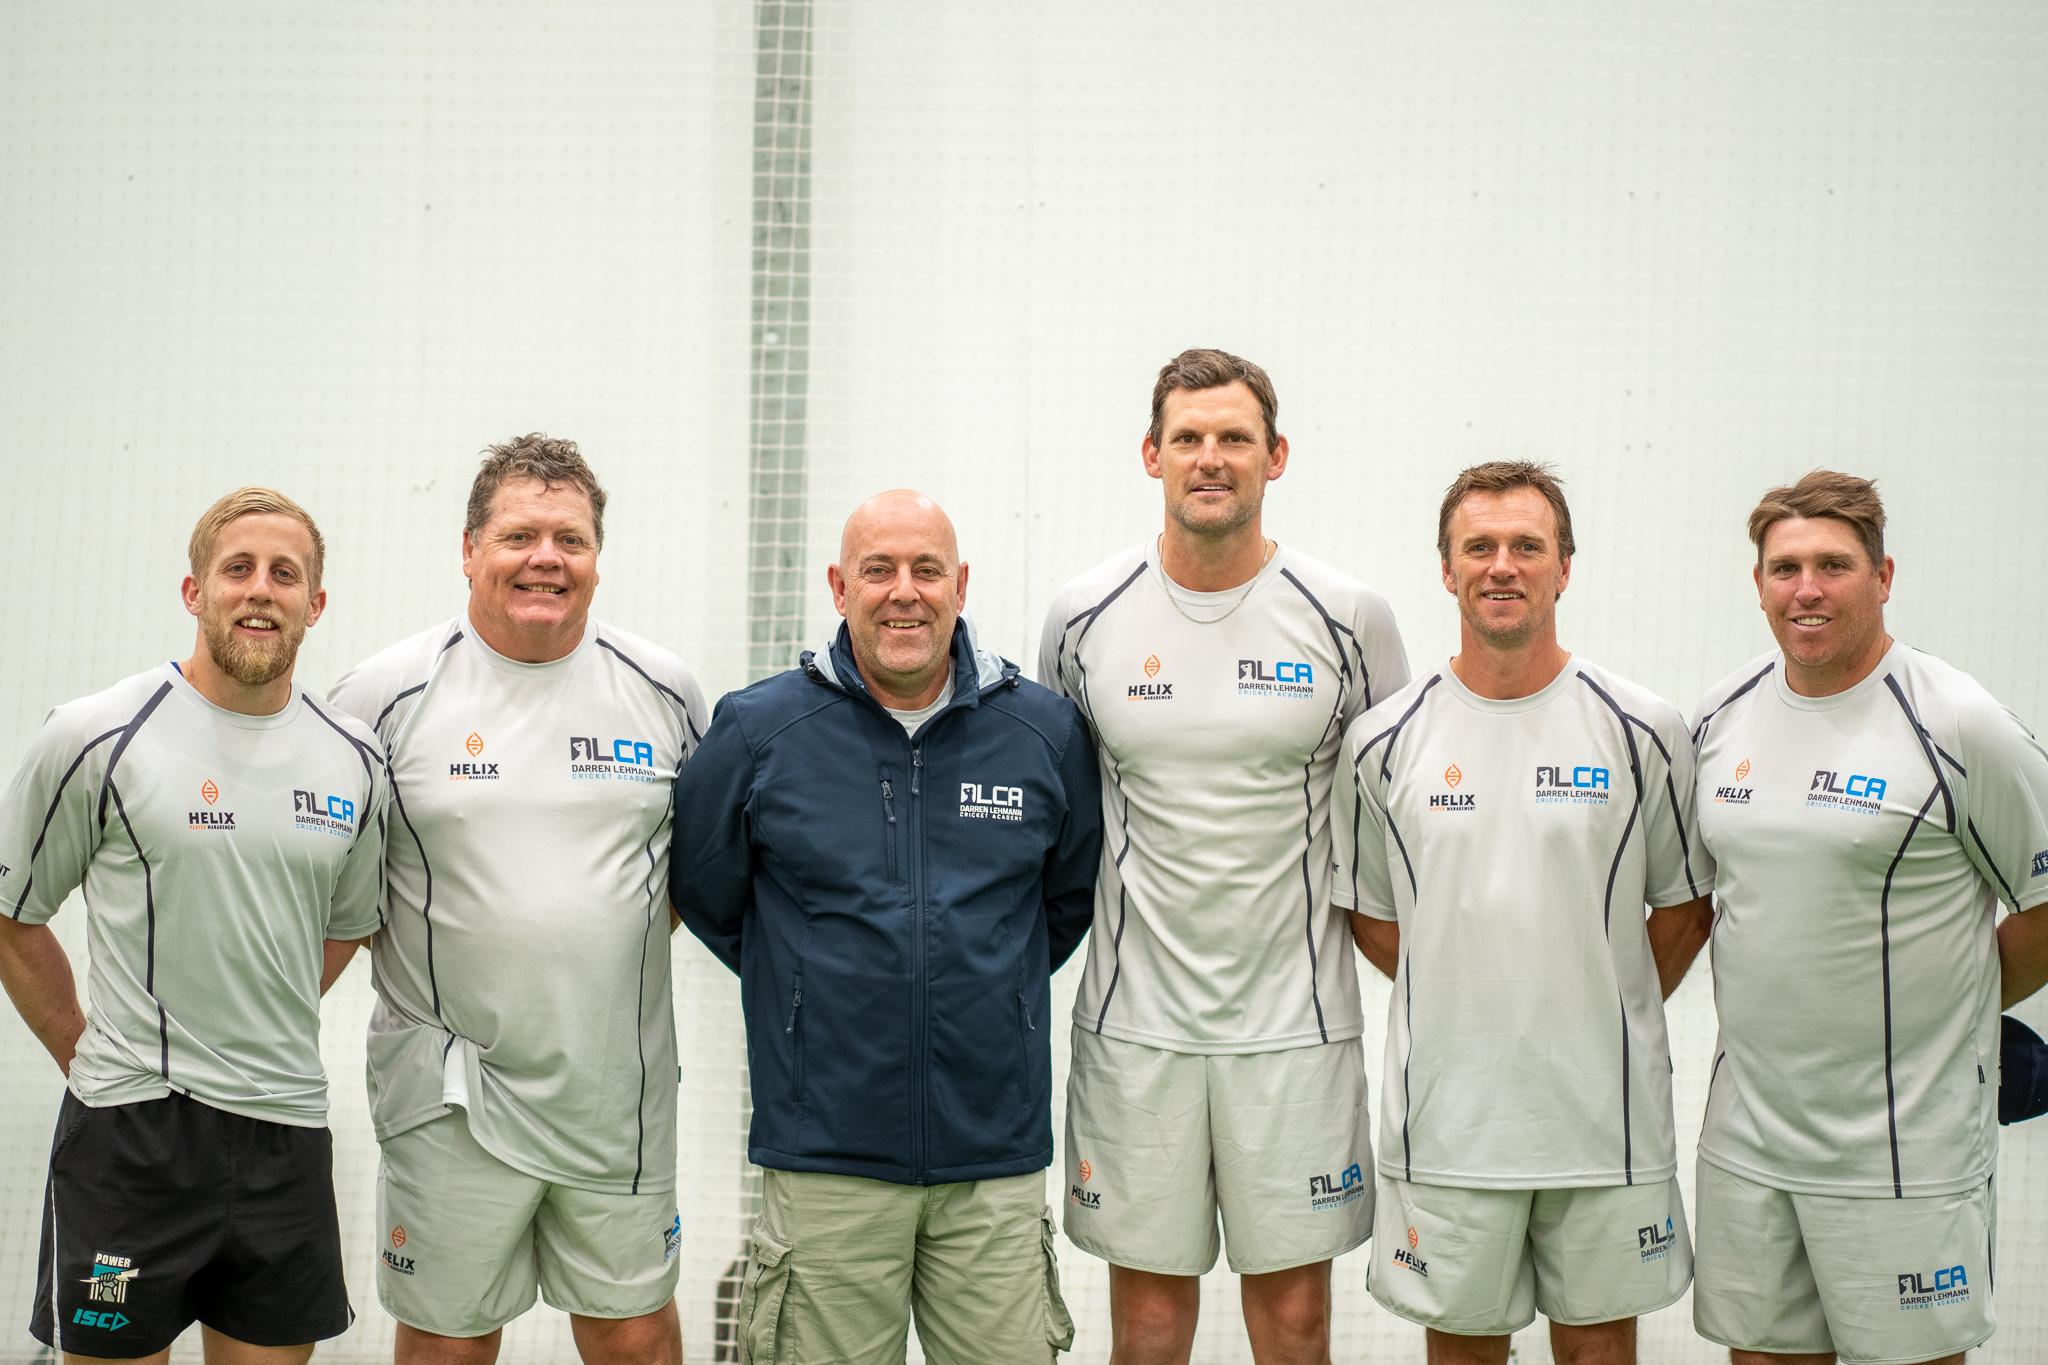 New DLCA coaching group